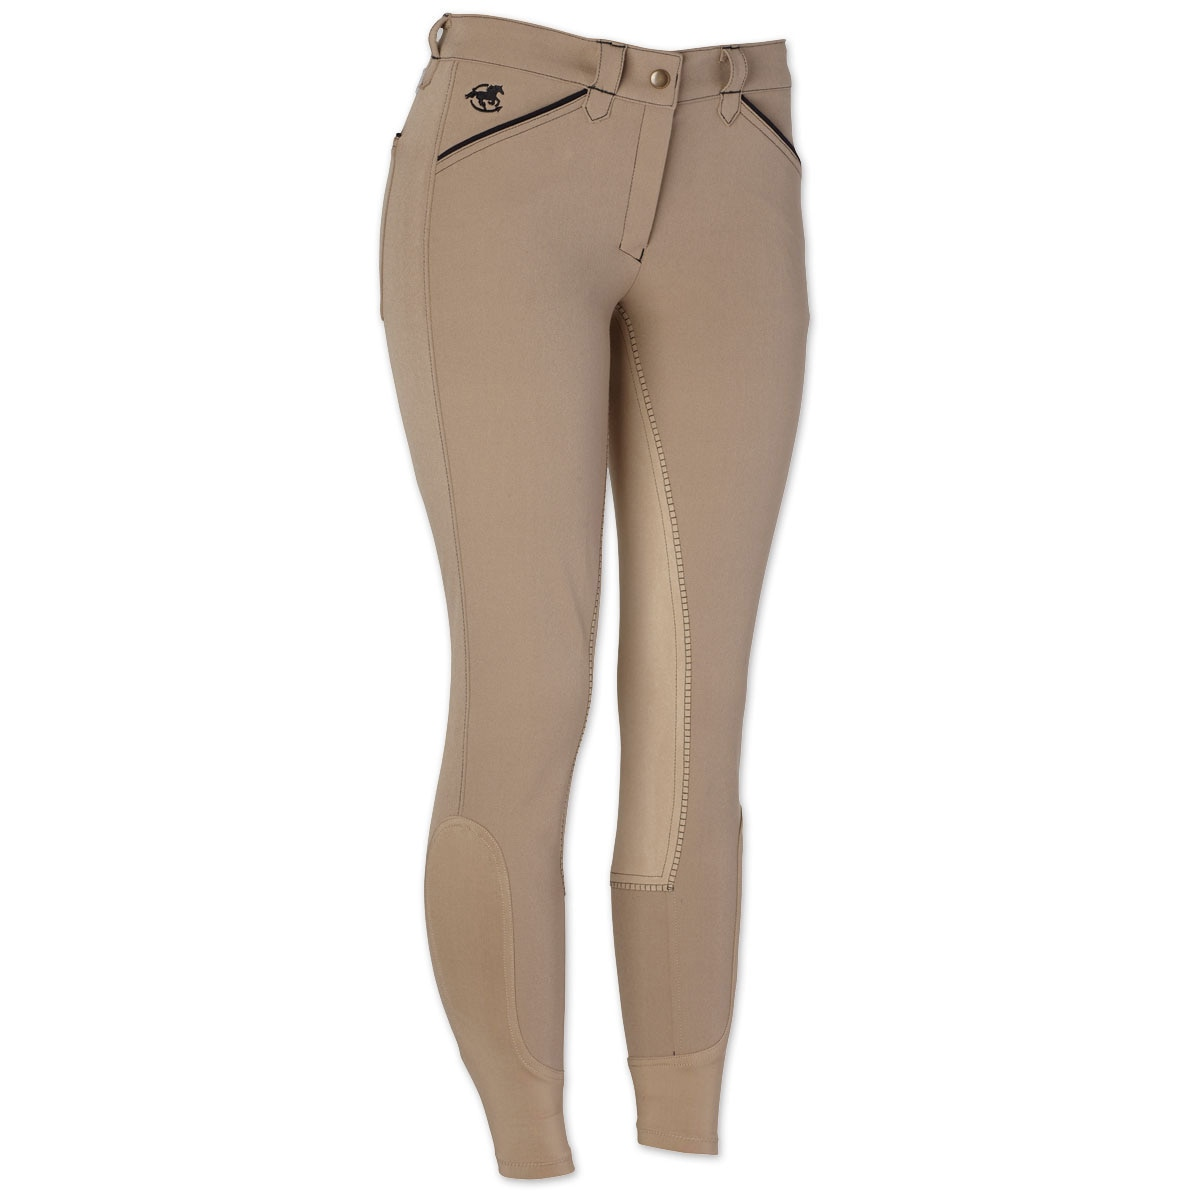 Piper Breeches by SmartPak - Mid Rise Full Seat